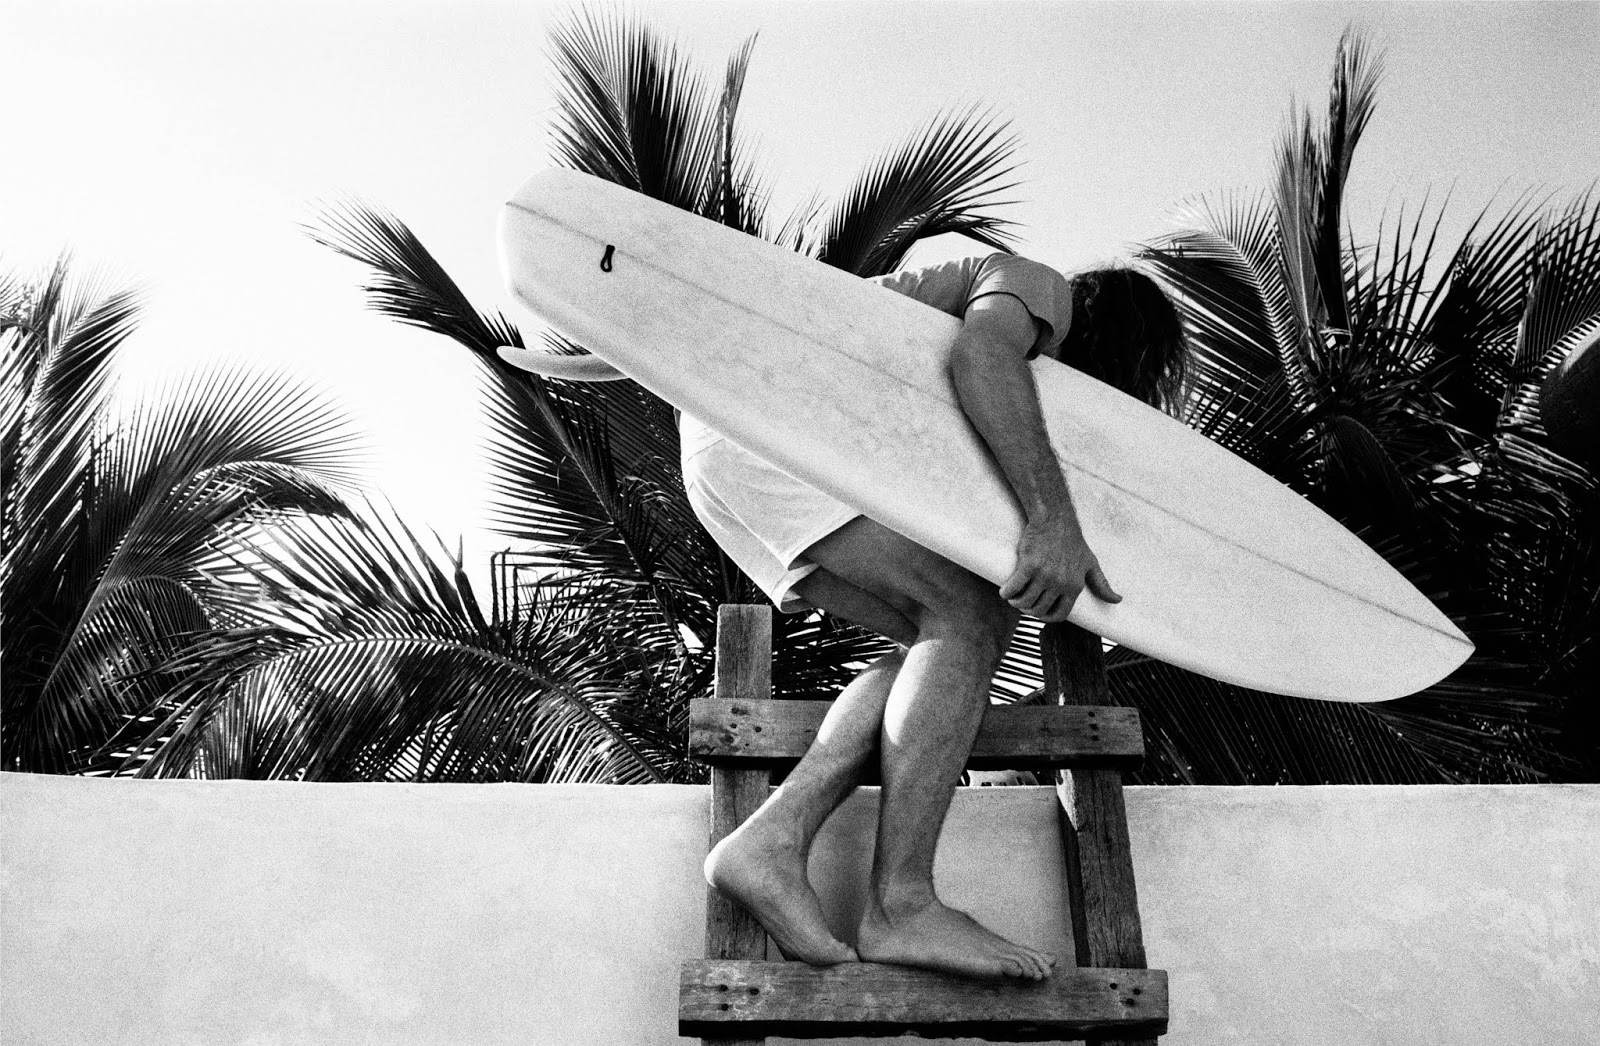 Surfin Estate Surfinestate shop brand clothing apparel surf surfboard shape handshape culture photography 35mm Matt Correia cantina reverberation radio Allah-las Vincent Lemanceau Arthur Nelli Hossegor France Los Angeles